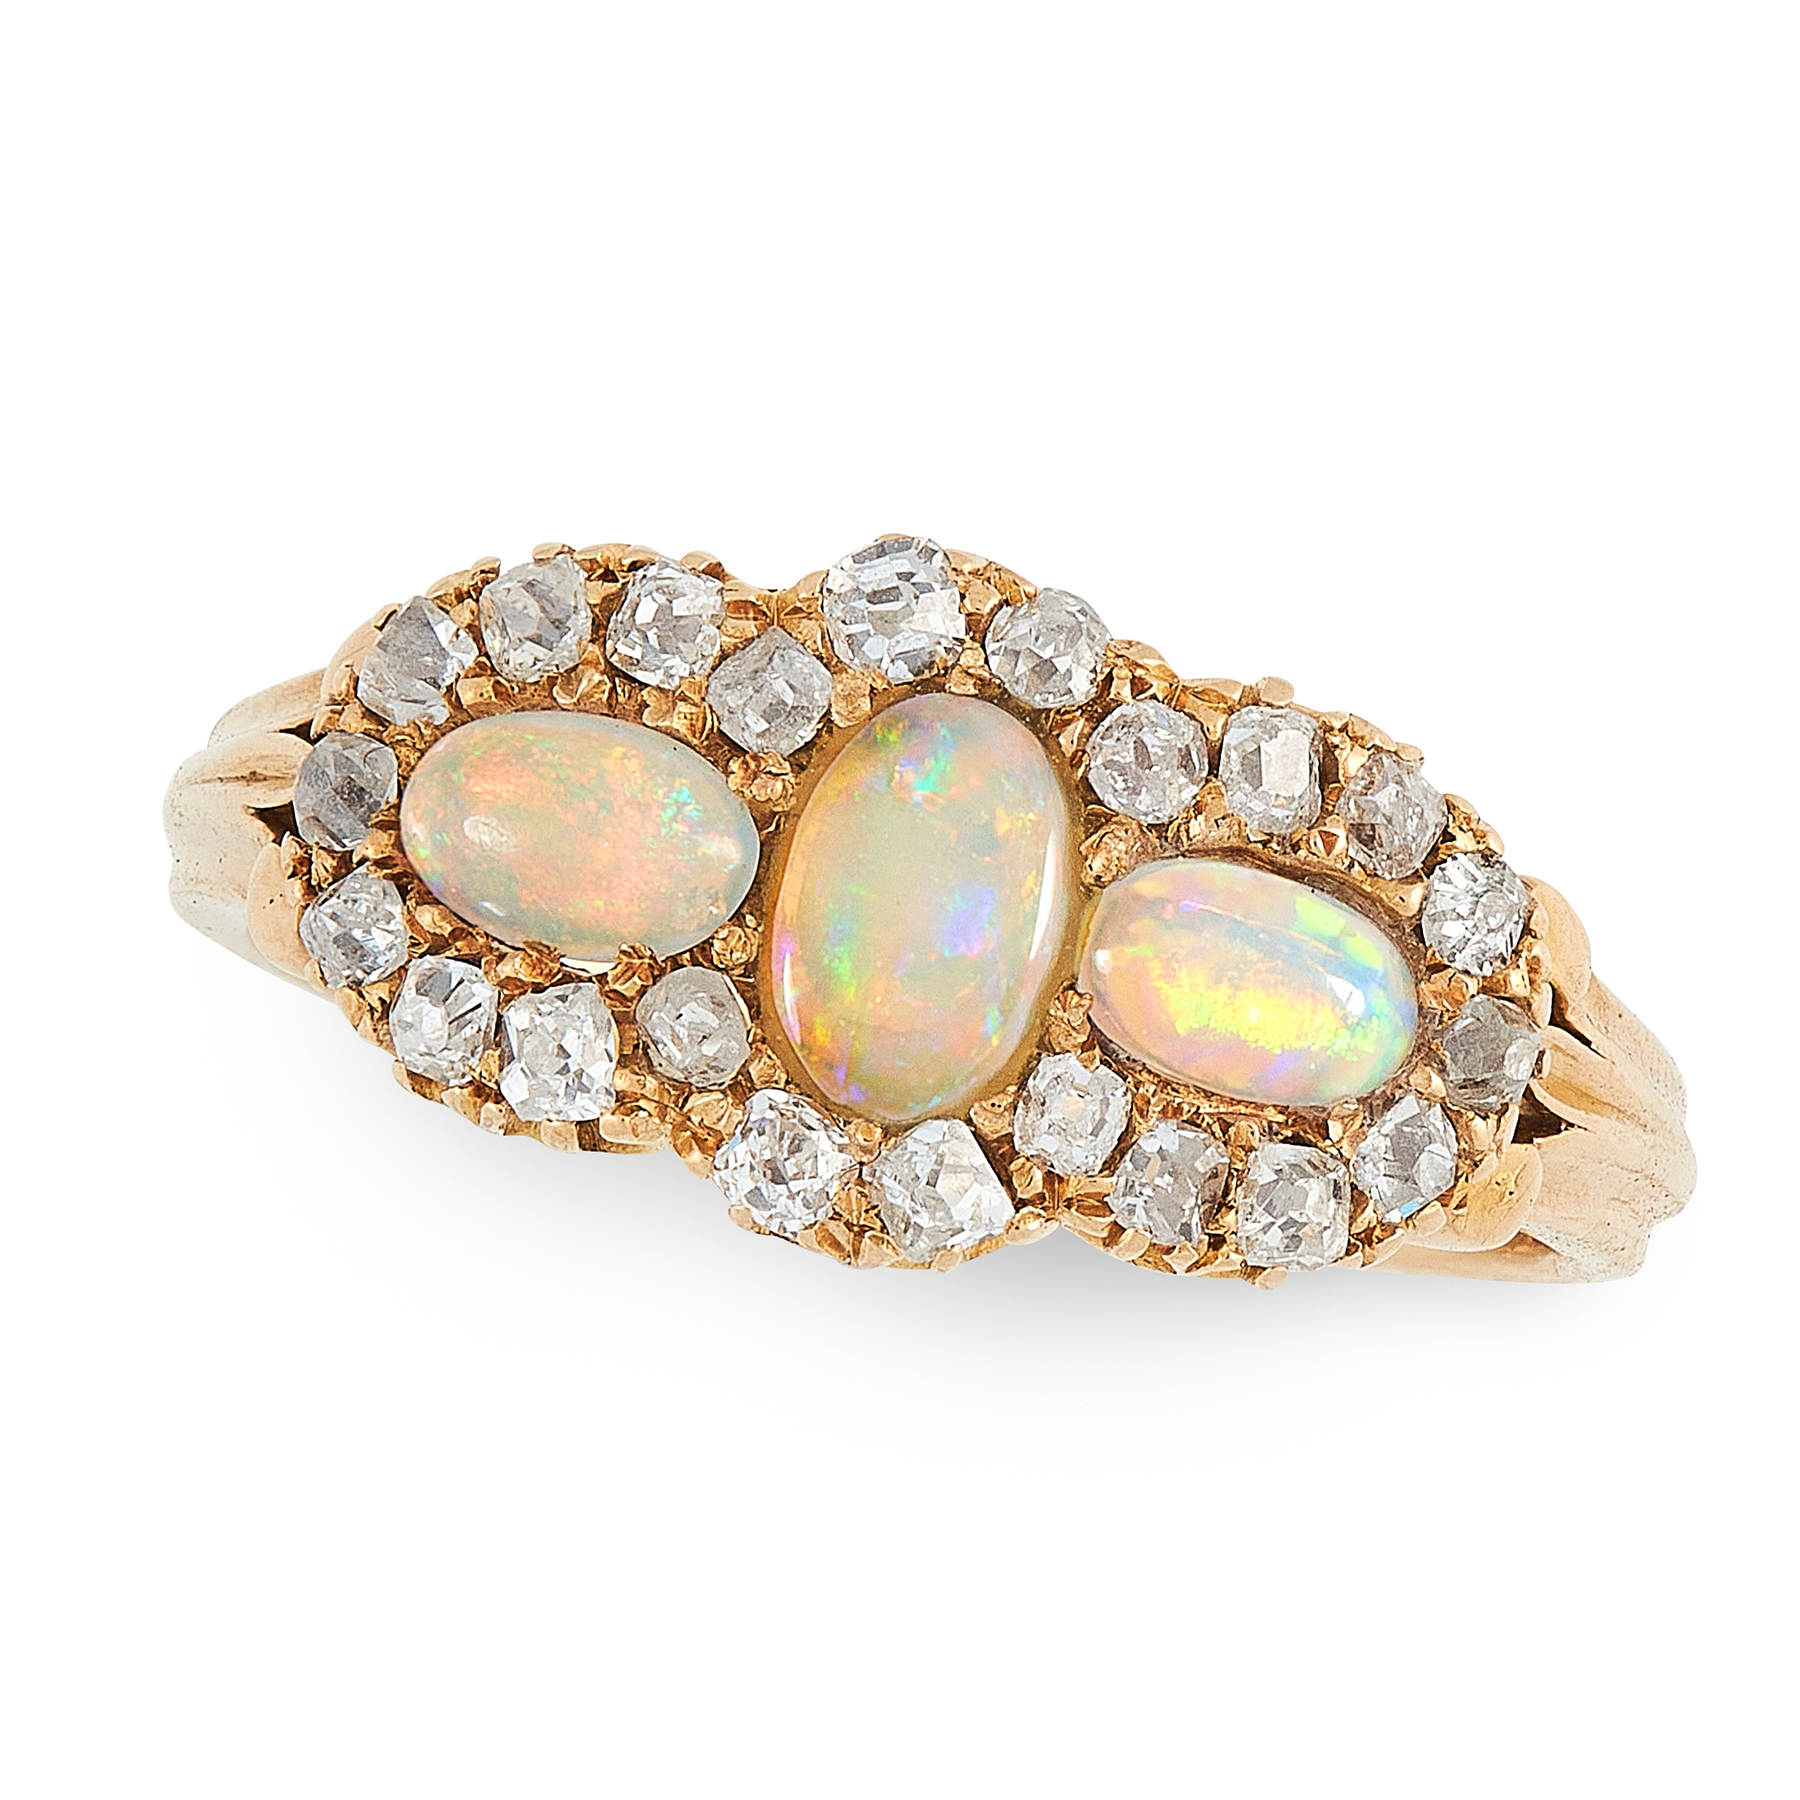 AN ANTIQUE VICTORIAN OPAL AND DIAMOND RING, 1888 in 18ct yellow gold, set with a trio of oval